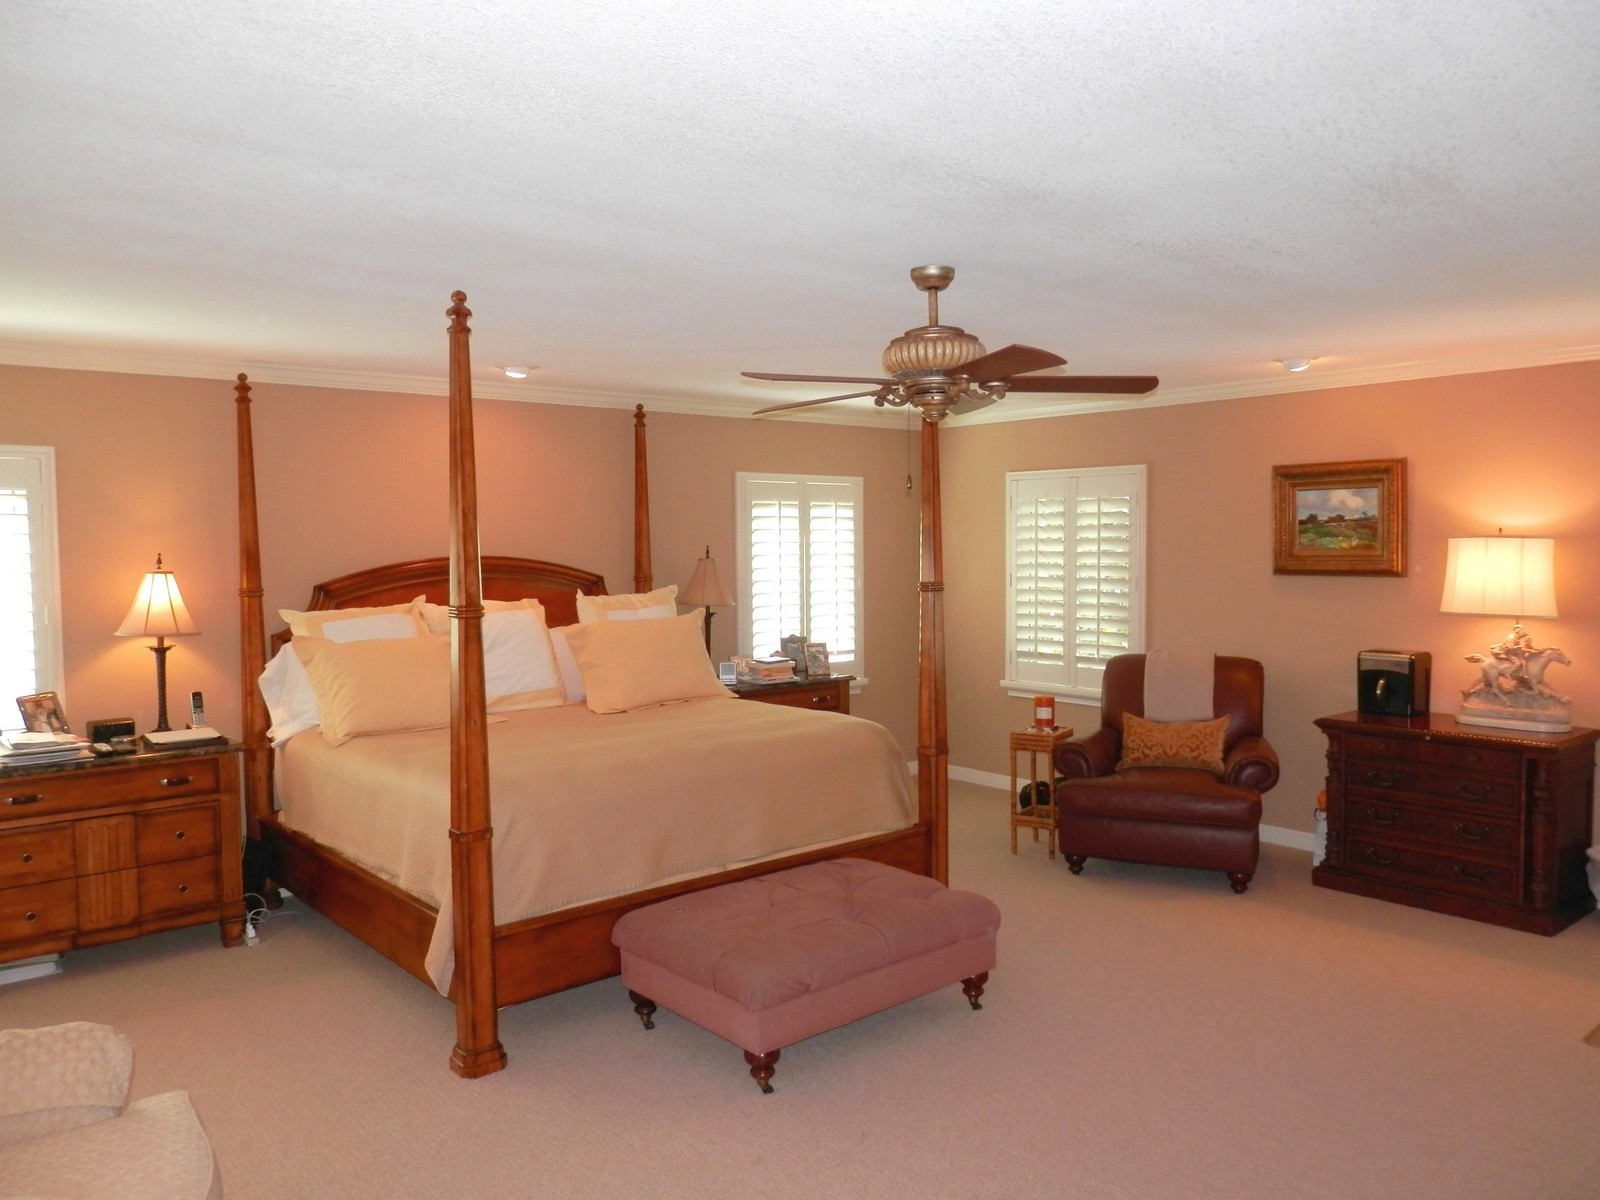 Real Estate Photography - 4922 New Providence Ave, Tampa, FL, 33629 - Master Bedroom